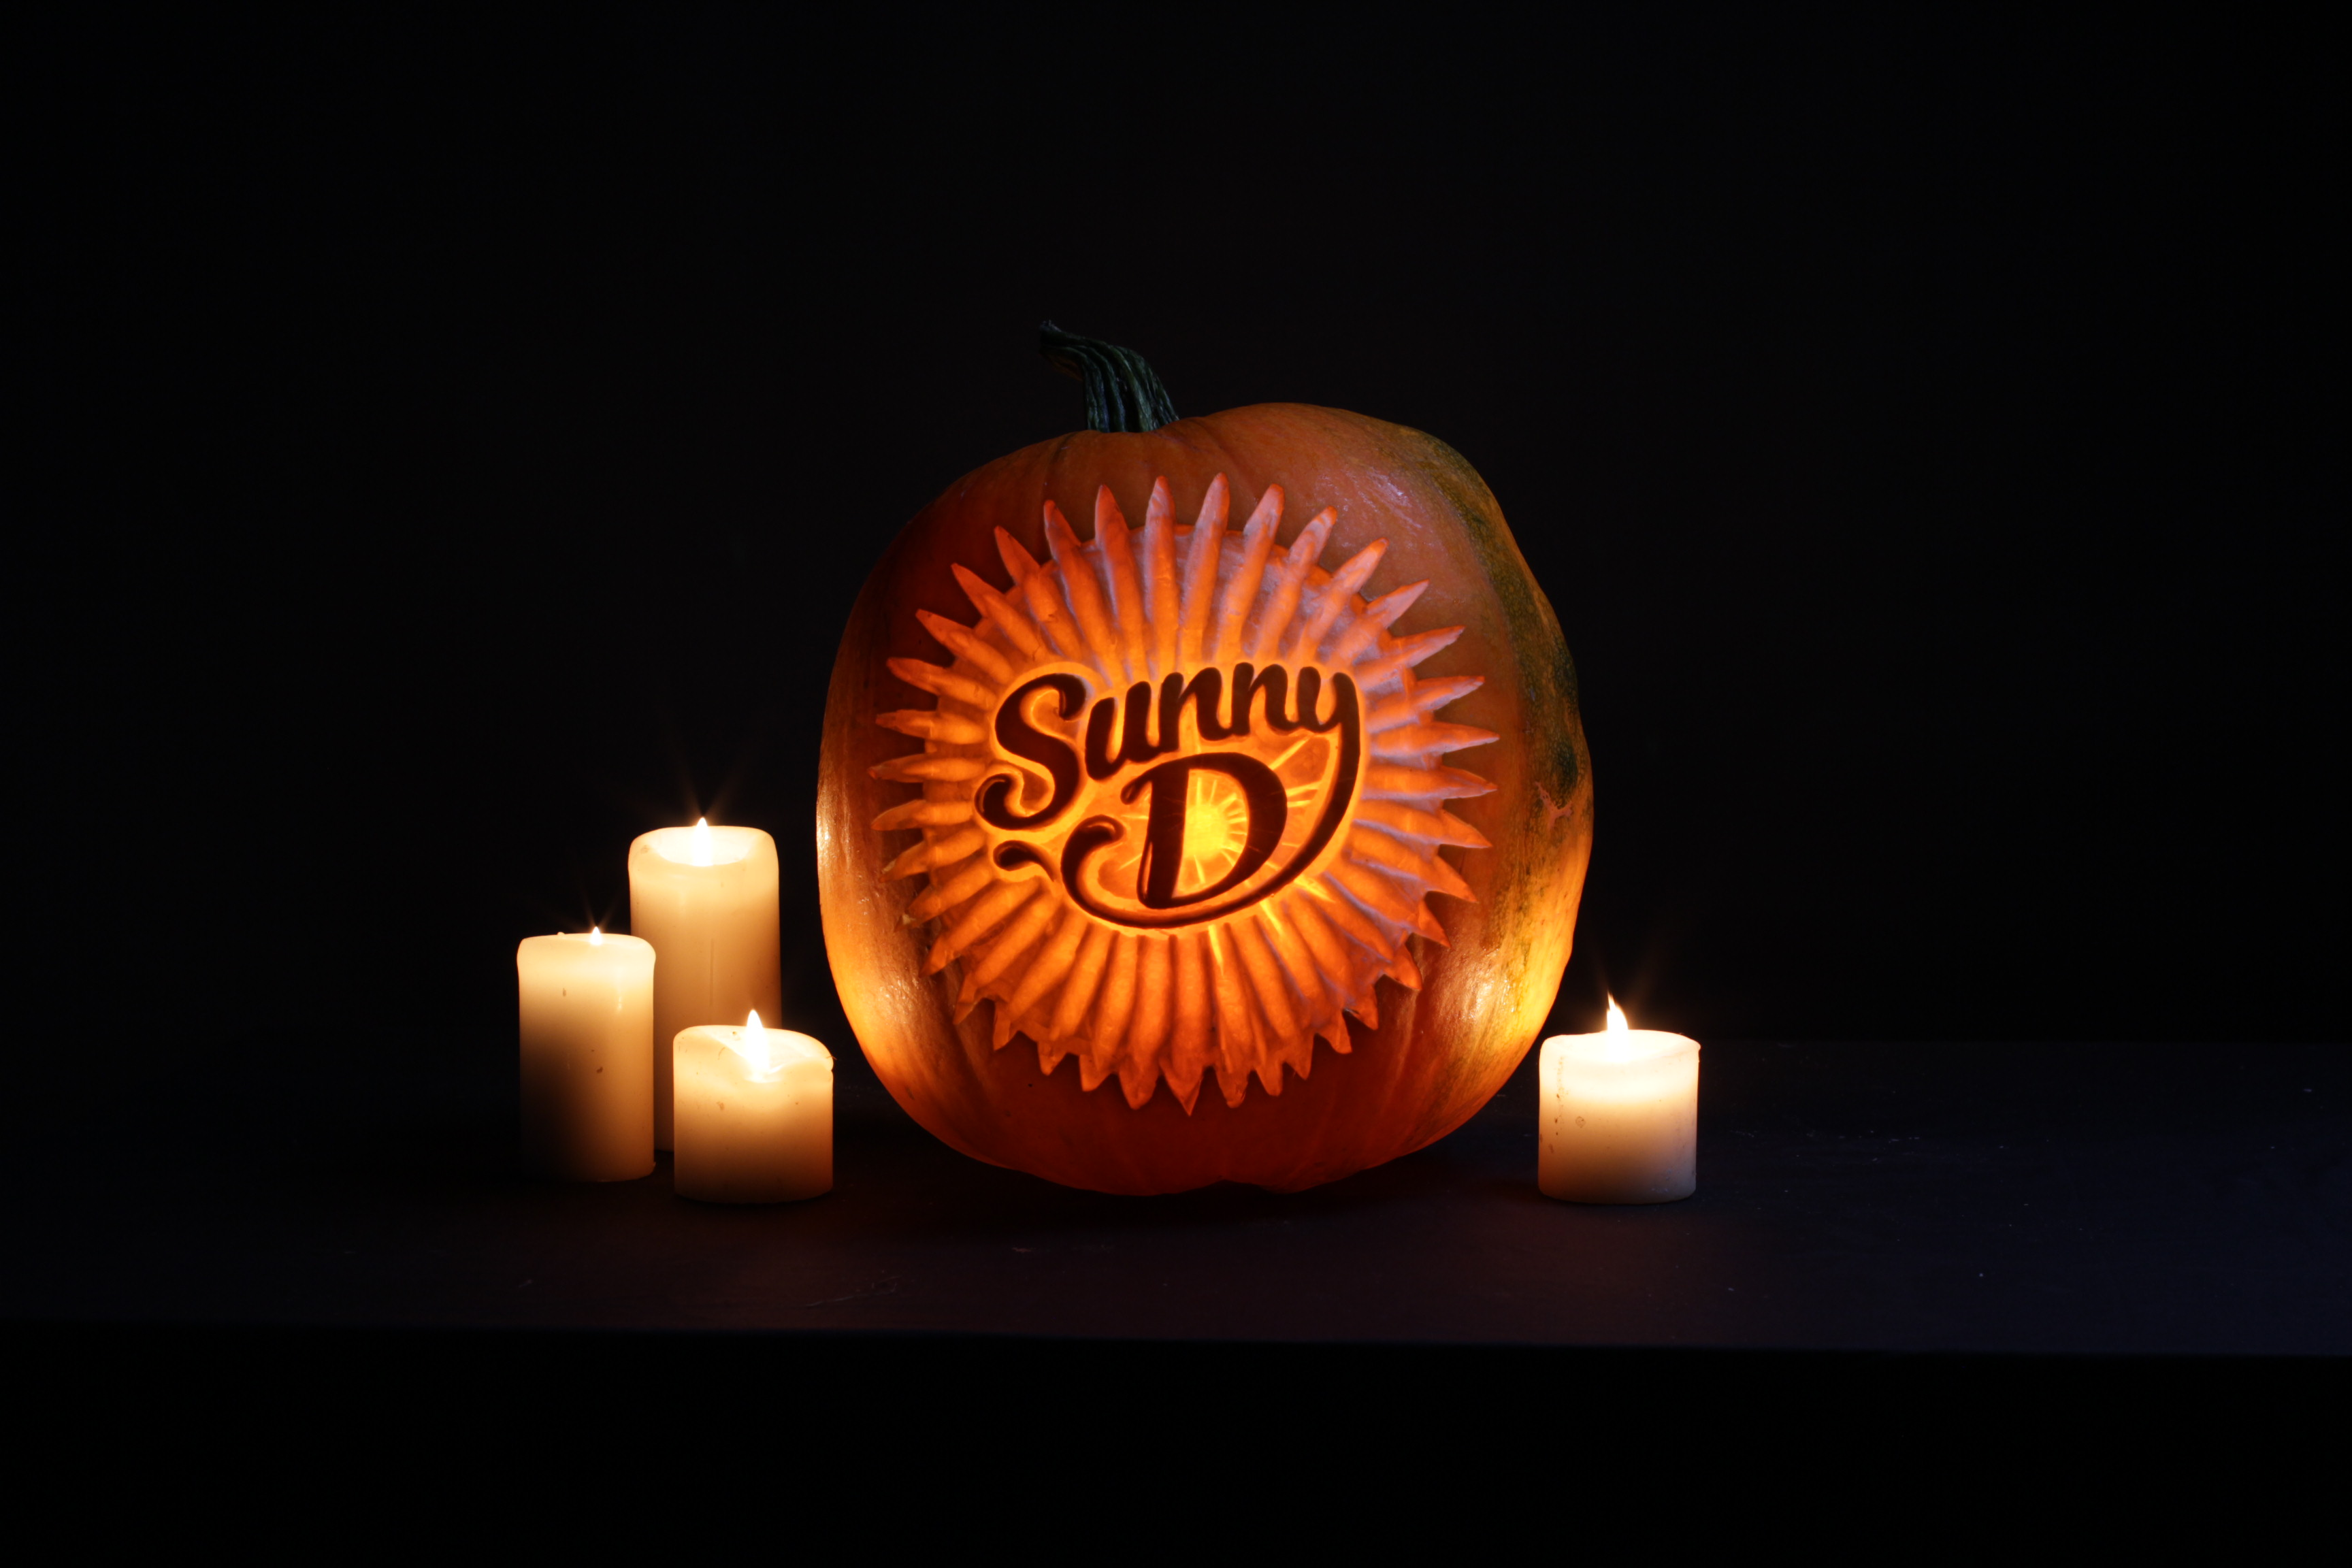 Pumpkin carvers create logos and branding into pumpkins